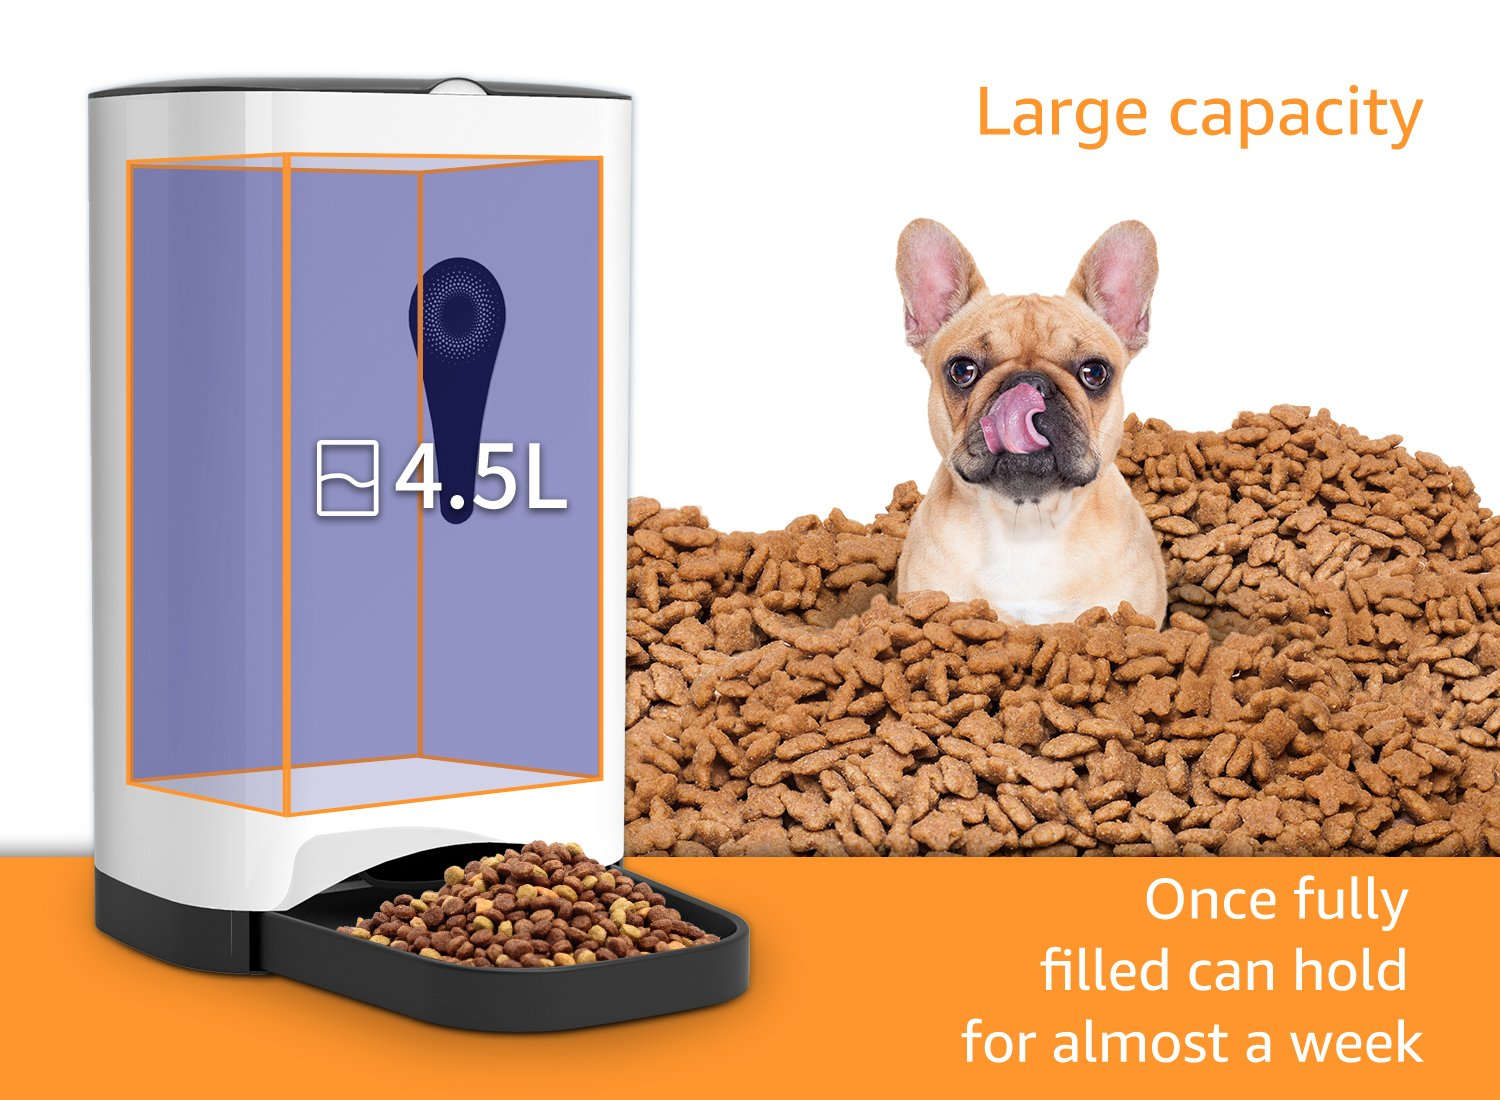 Smart Automatic Cat Feeder - SUKI&SAMI Pet Food Dispenser, with Timer Programmable, Voice Recording, WI-FI Enabled APP control Up to 8 Meals a Day by SUKI&SAMI (Image #3)